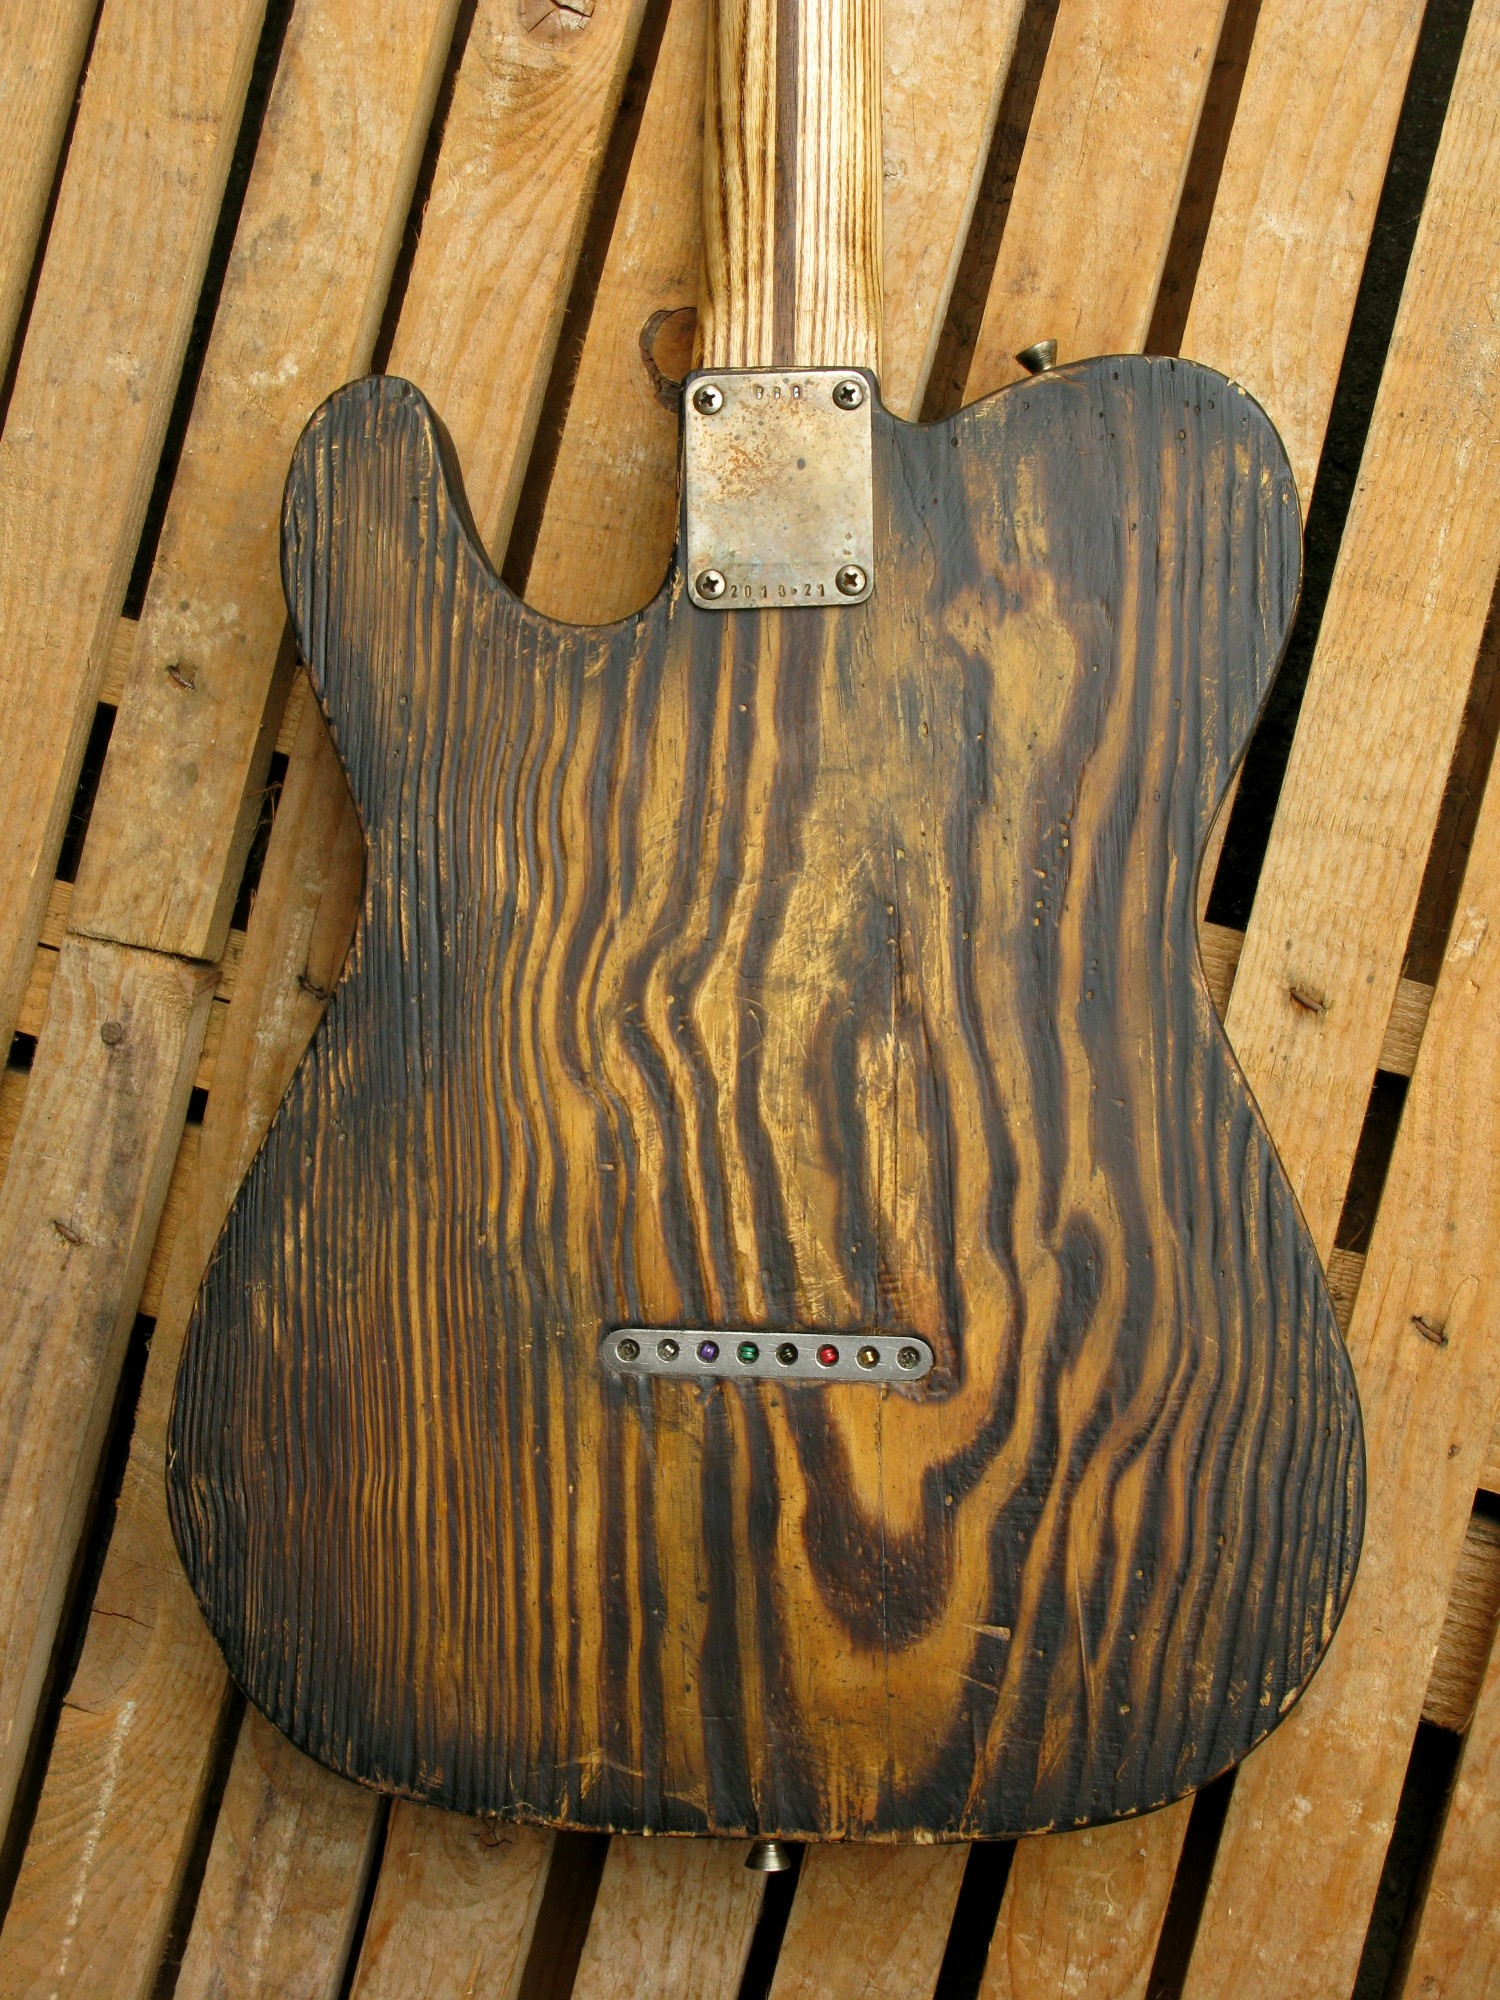 Retro del body di una Telecaster in pitch pine e manico in frassino